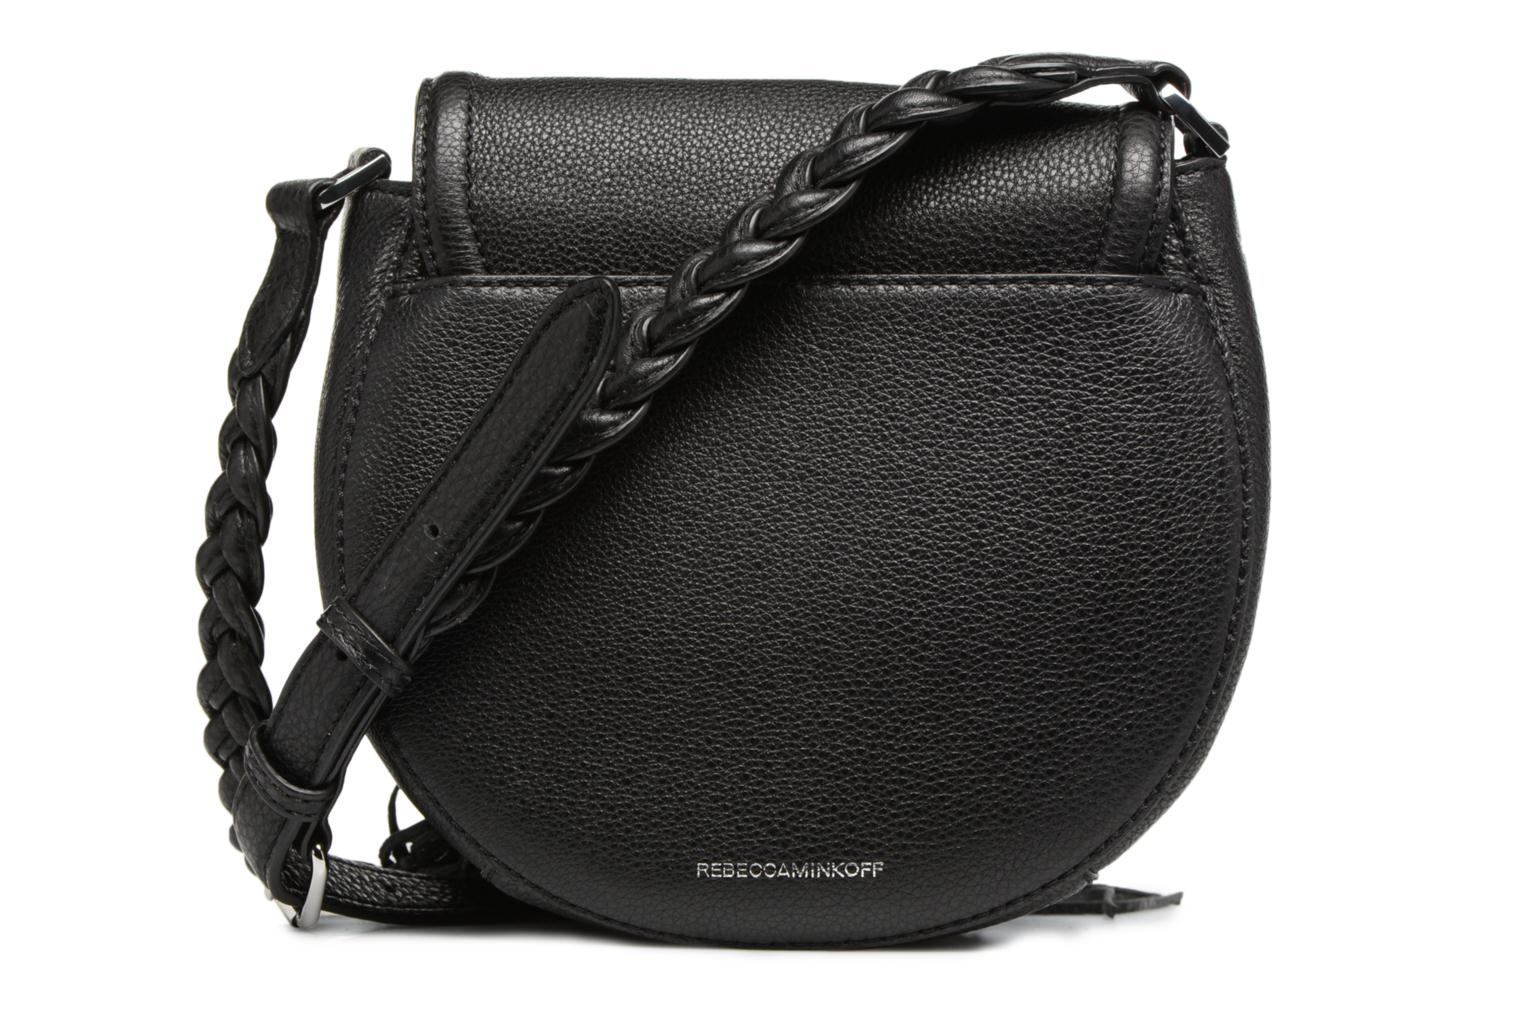 Sacs à main Rebecca Minkoff ISOBEL SADDLE BAG Noir vue face